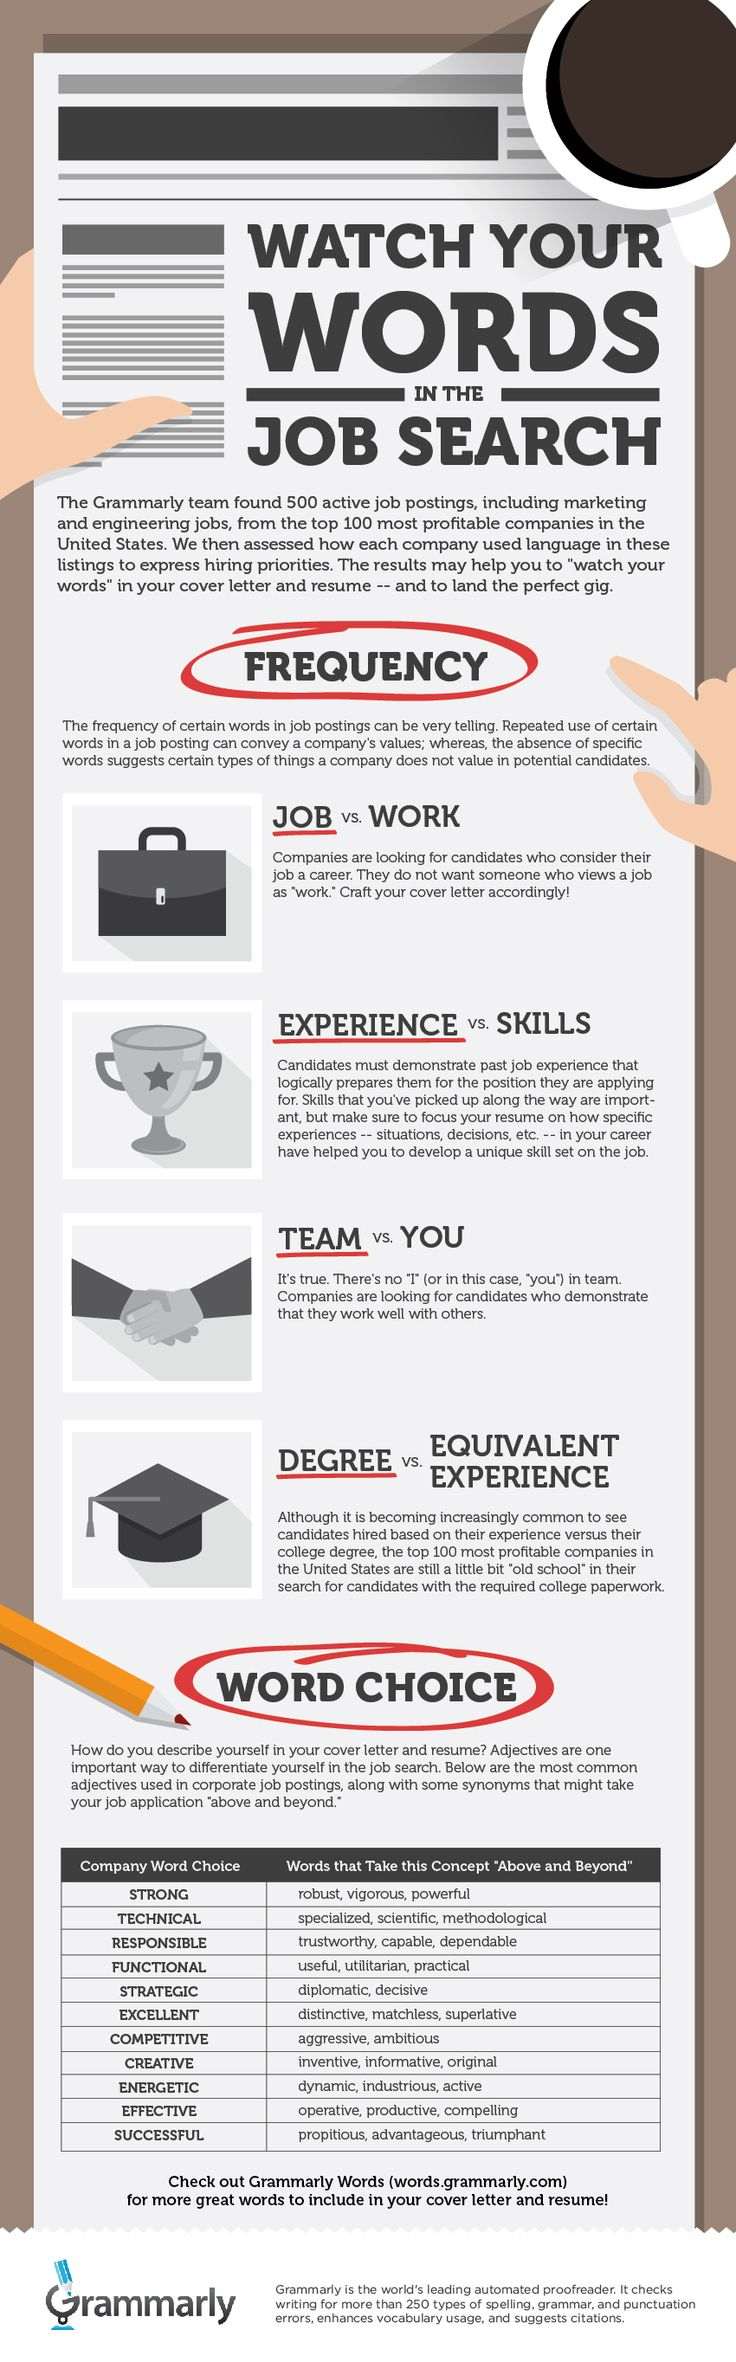 How To Do A Cover Resume Best 185 Job Hunting Images On Pinterest  Resume Ideas Career And .